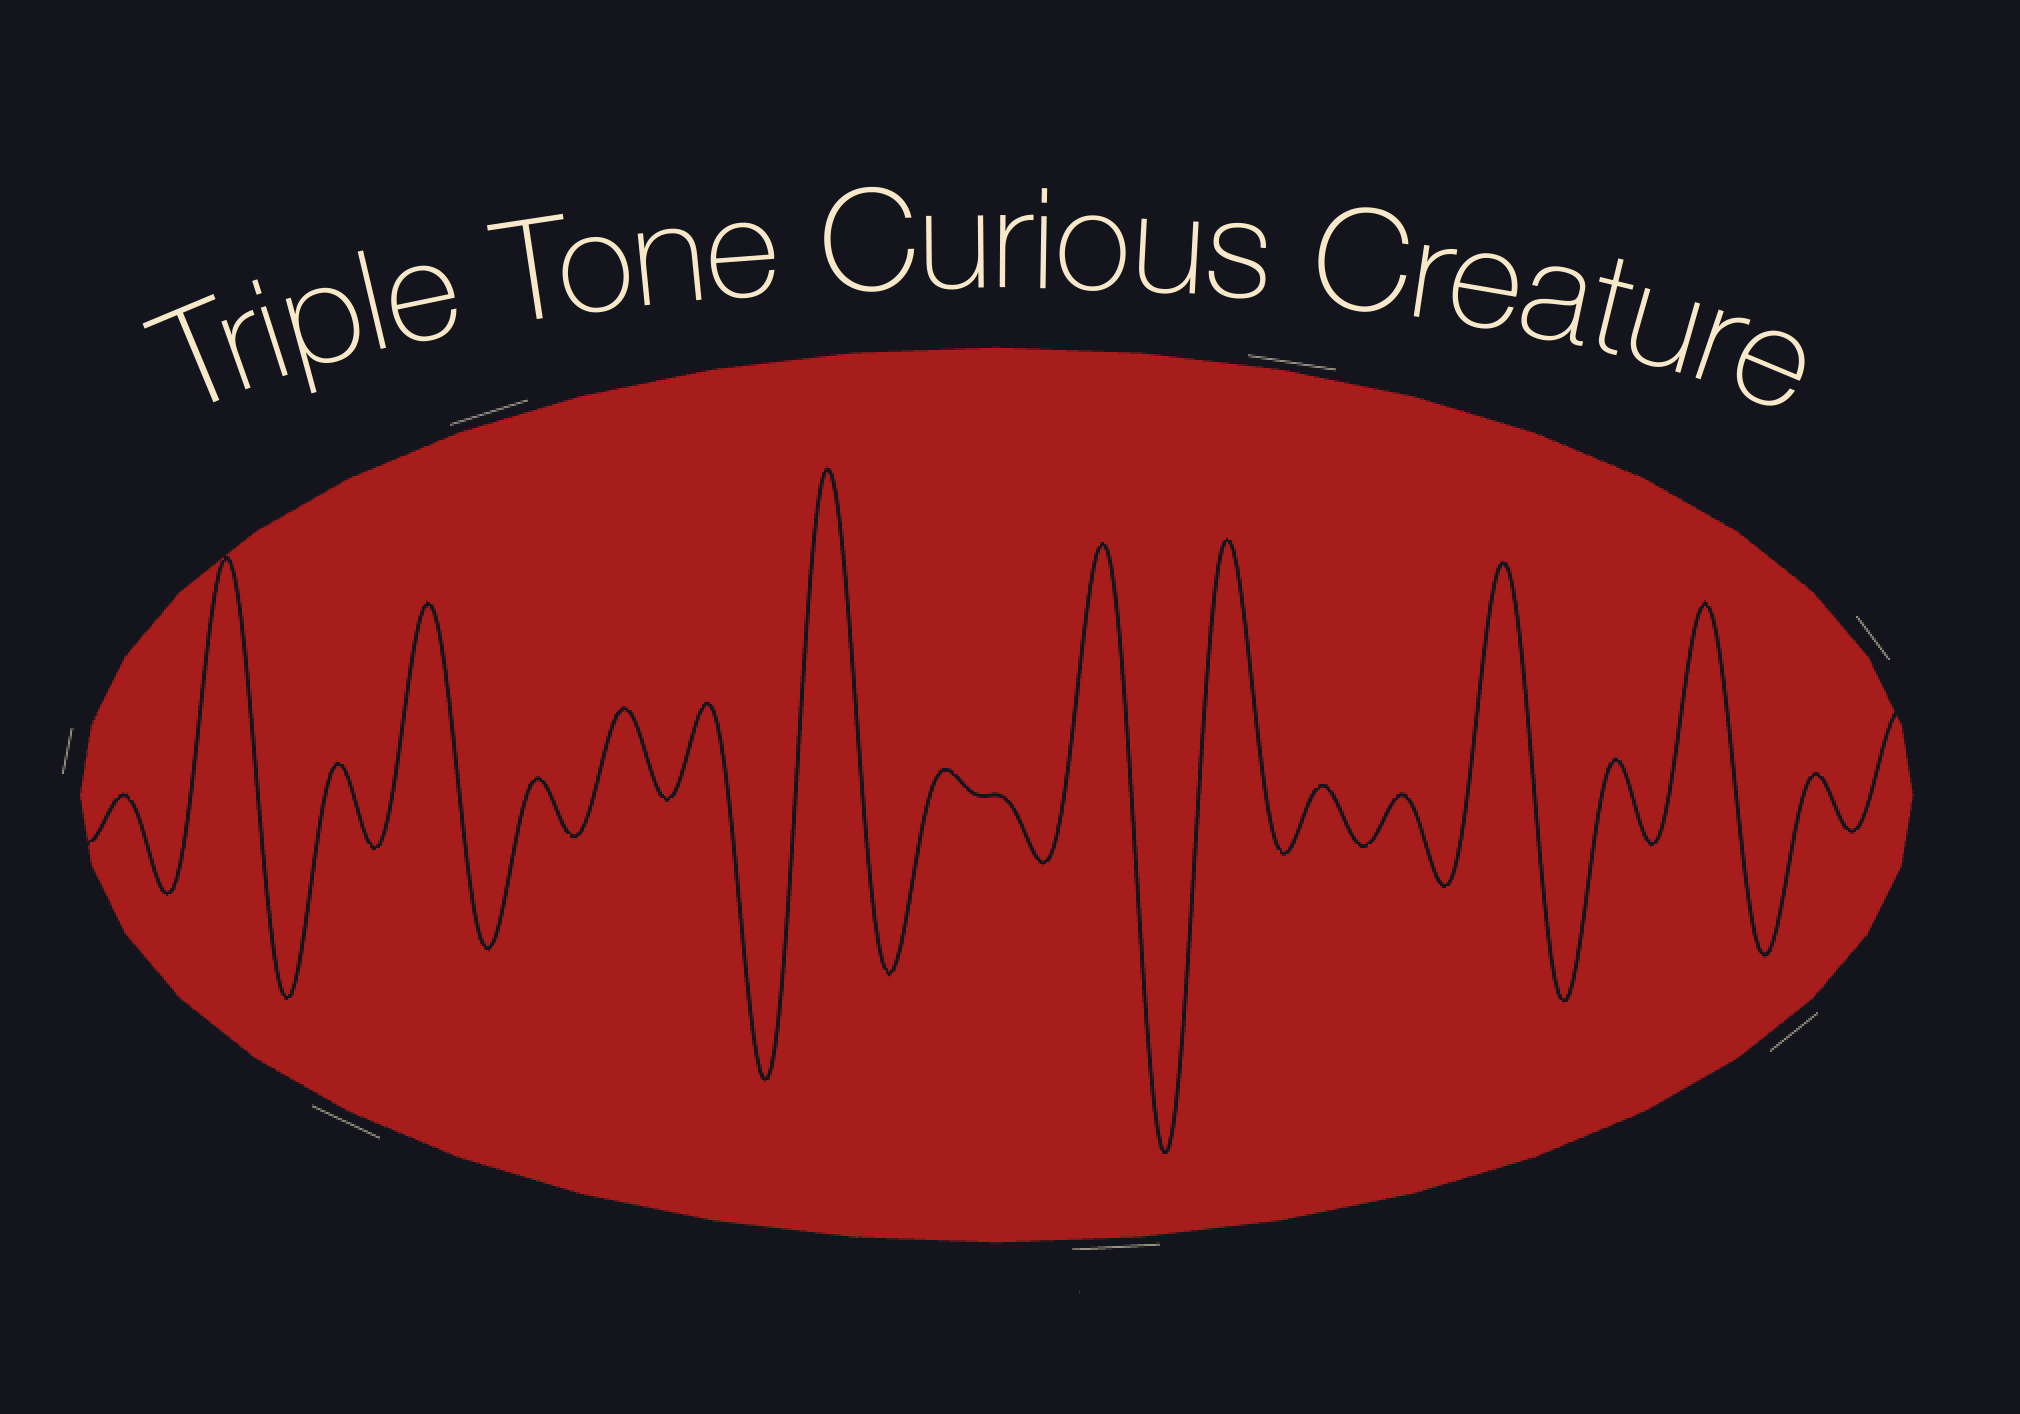 Triple Tone Curious Creature